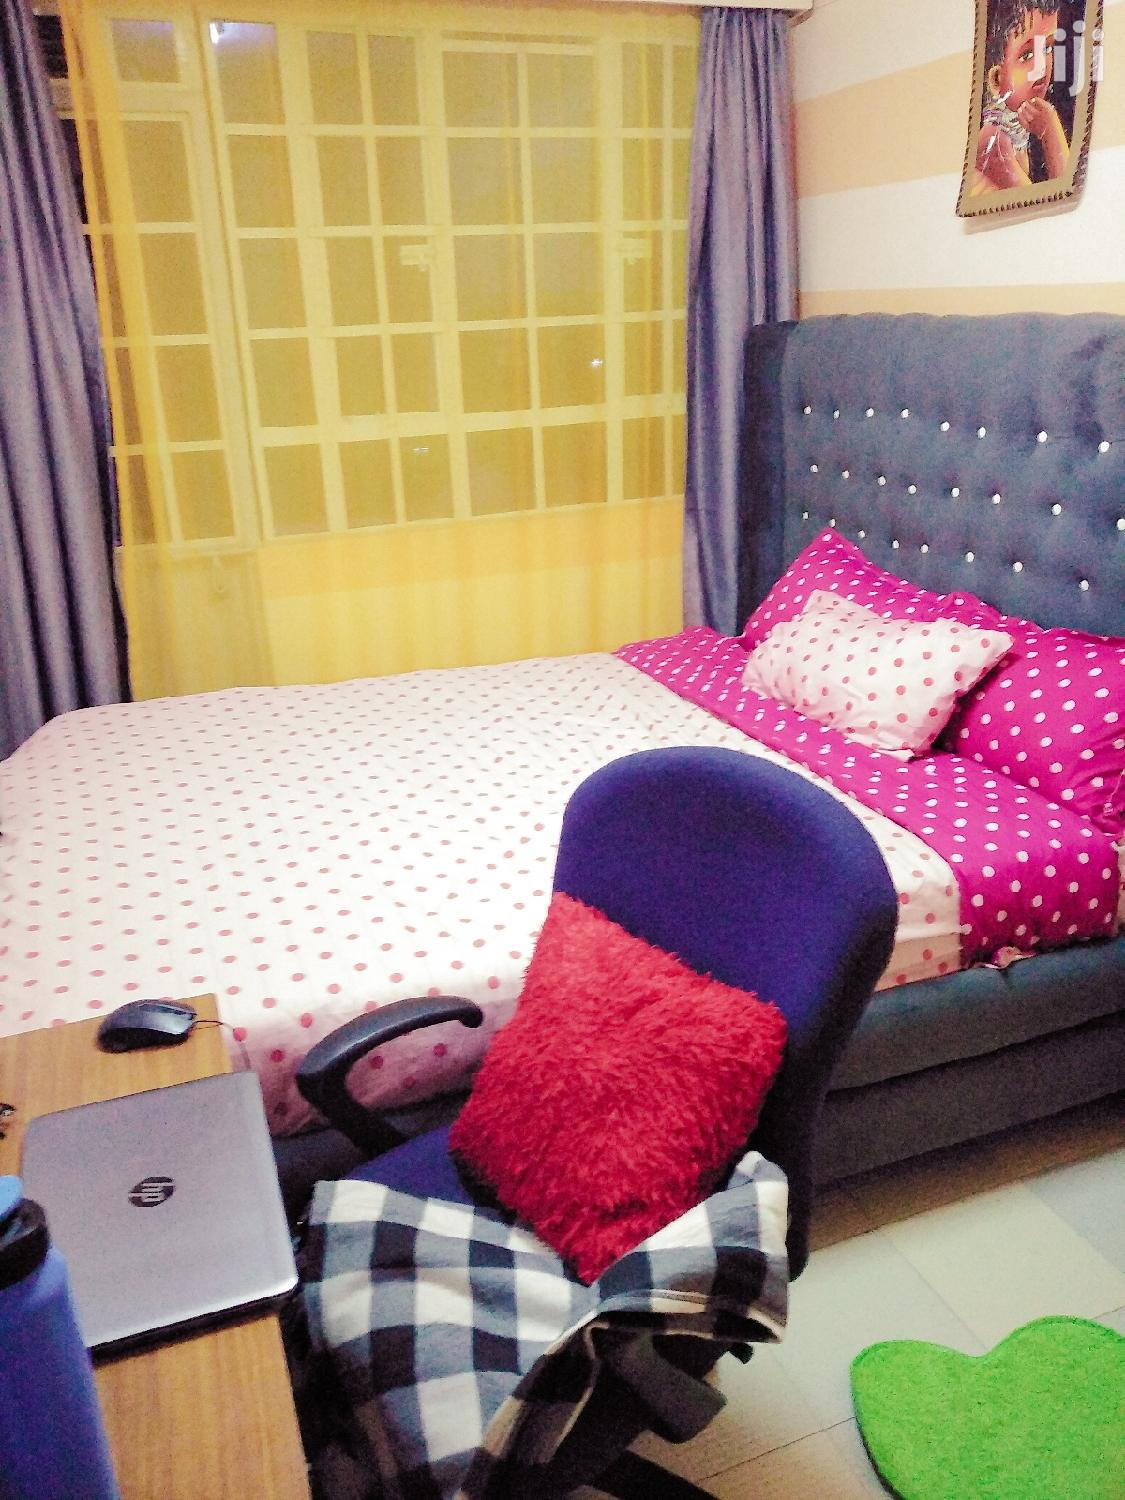 Archive: 5 by 6 Bed Without Matress